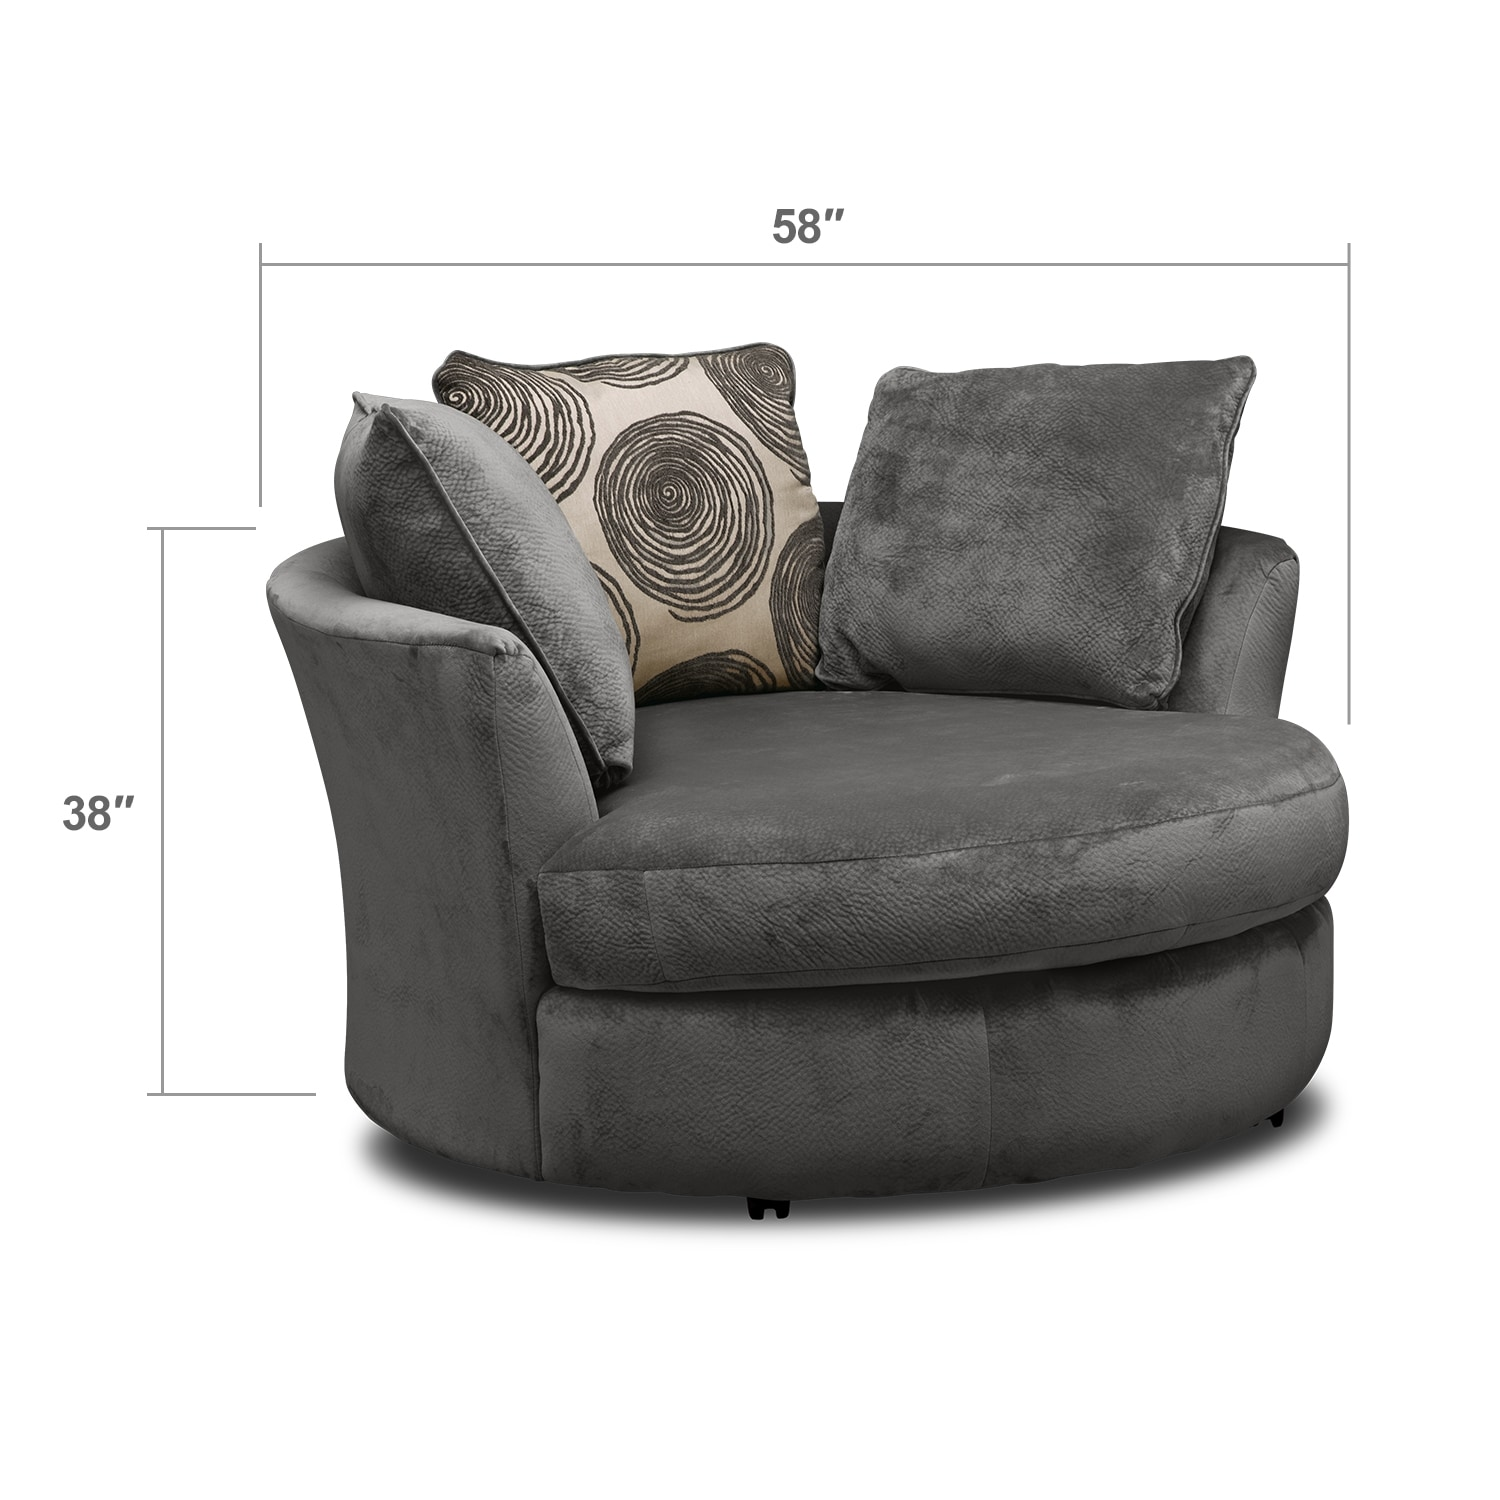 Cordelle Swivel Chair Gray American Signature Furniture